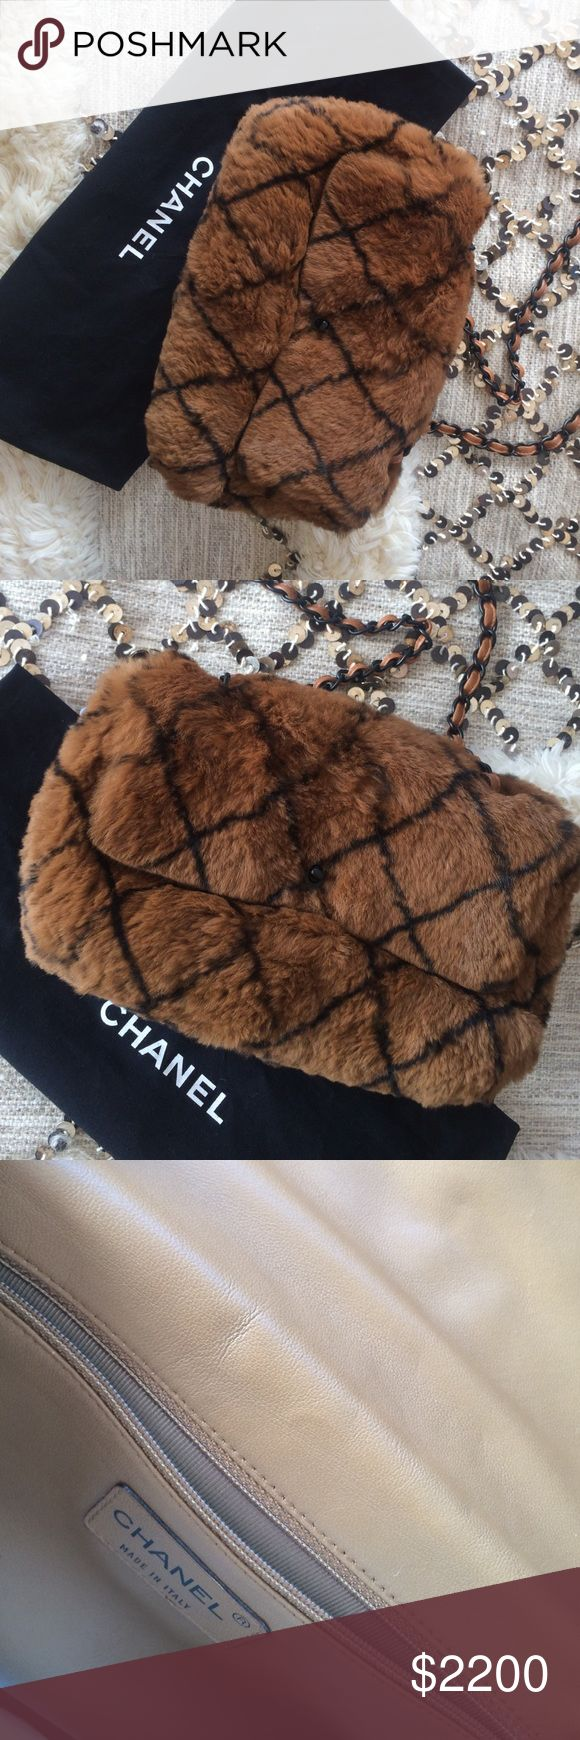 Chanel Fur bag Chanel Fur bag. Excellent like new condition. CHANEL Bags